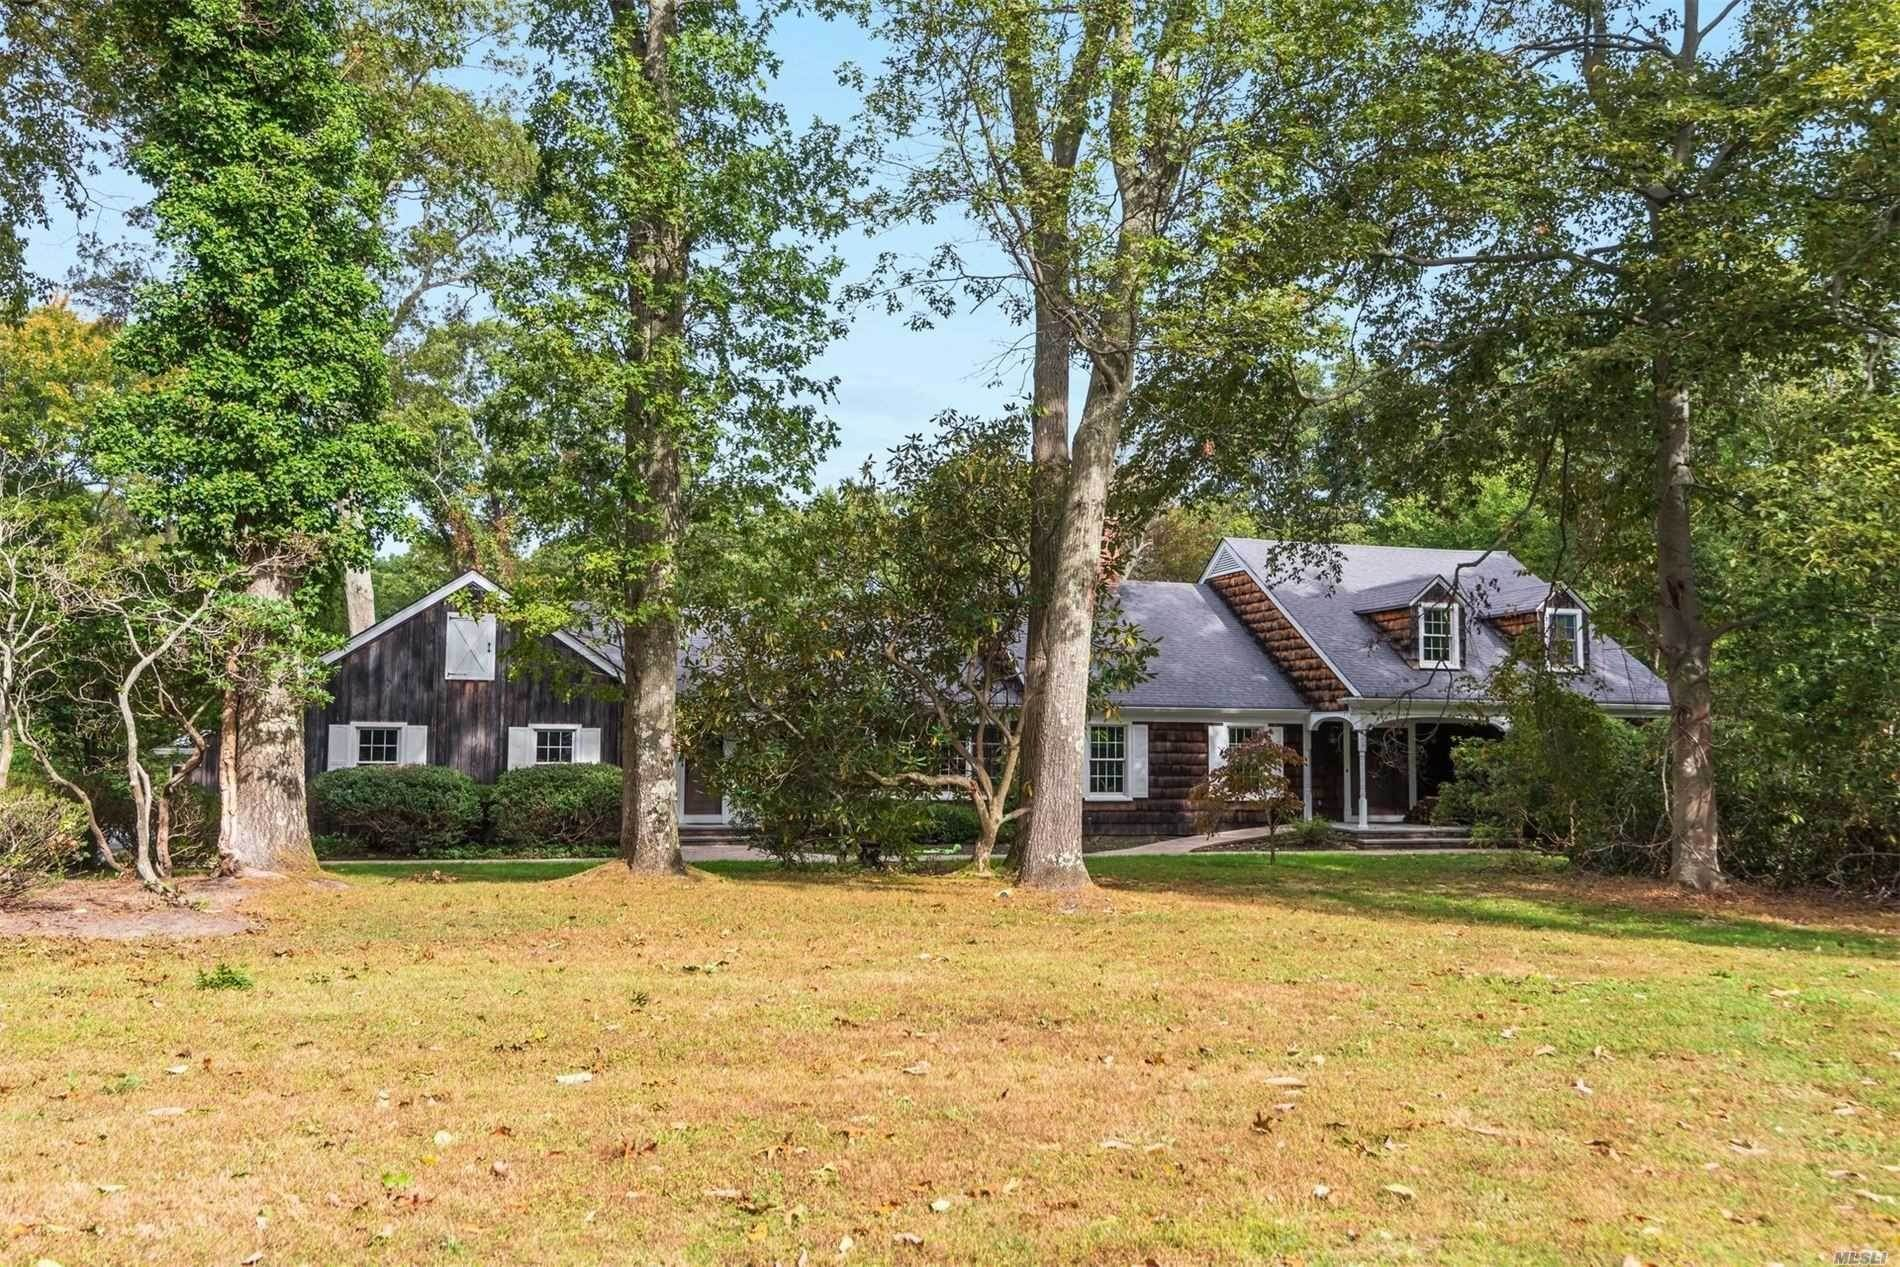 Residential for Sale at 9 W Gate Lane, Old Field, NY 11733 Old Field, New York 11733 United States